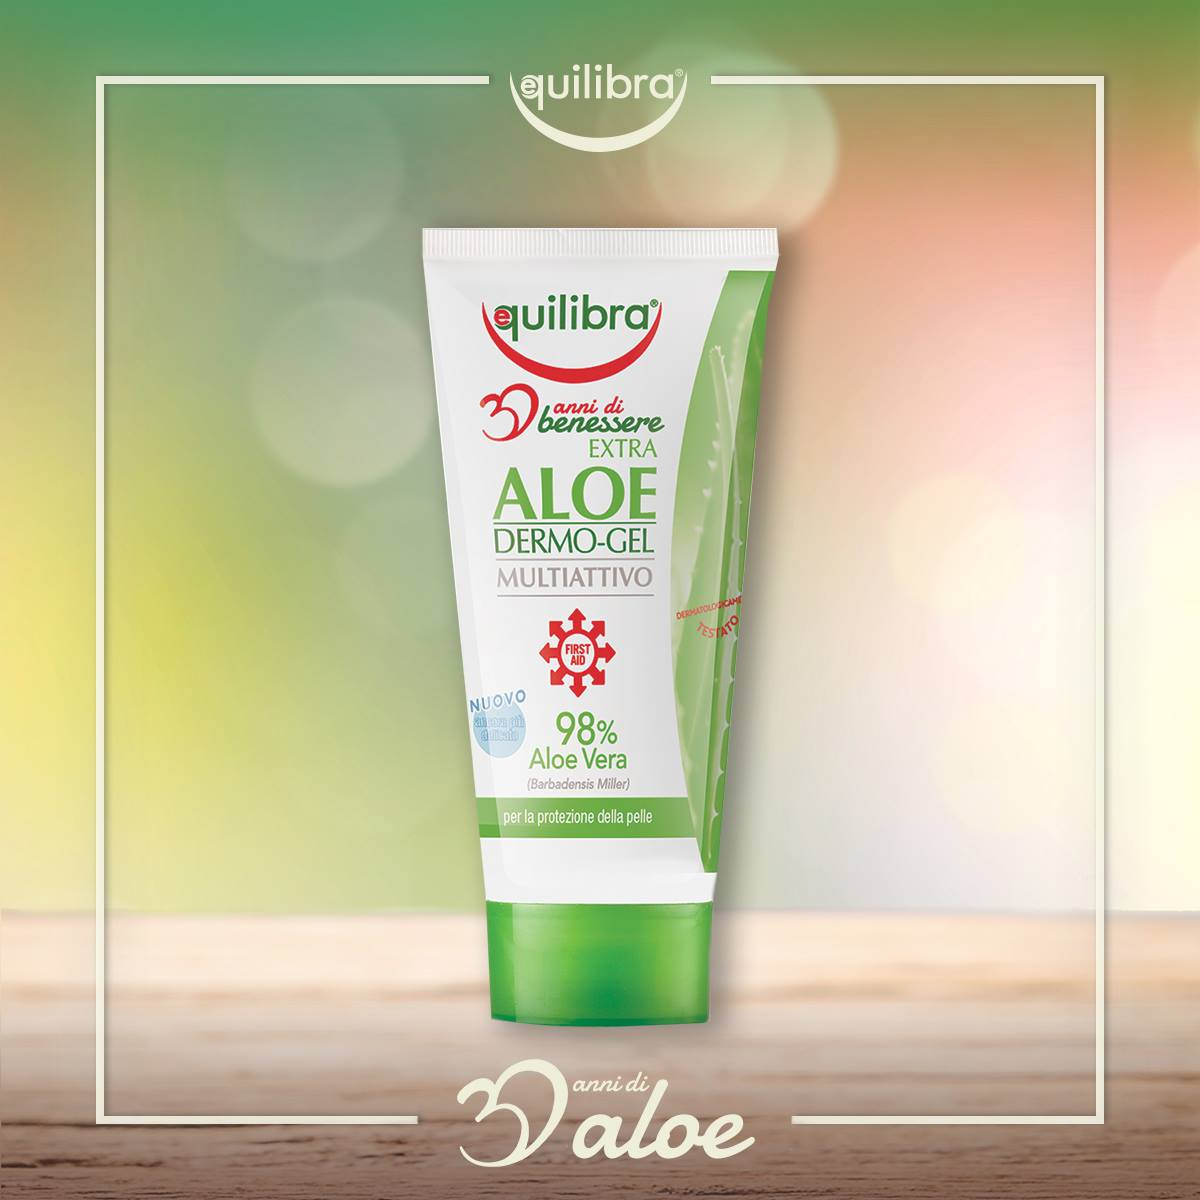 #EQUILIBRA® EXTRA #ALOE DERMO-GEL is obtained from Aloe Vera leaves & gives relief to the skin like contact with heat sources, gum inflammation, tired & excessively stressed feet, redness from friction or sweat, epilation or shaving. #equilibrapeople #doha #qatar #wellcaregroup